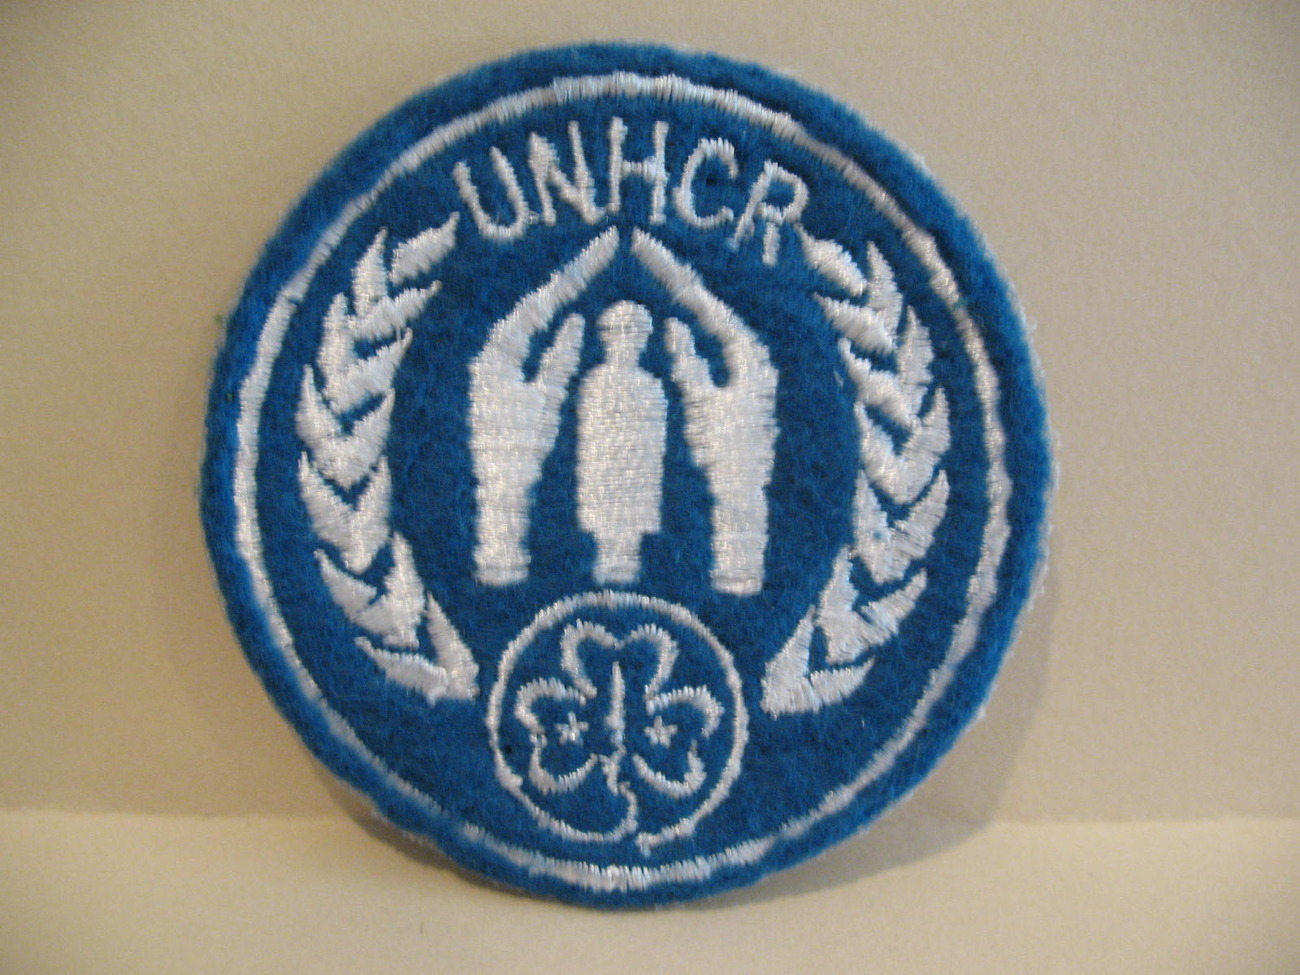 UNHCR Girl Guides Patch Crest Badge Souvenir Collectible